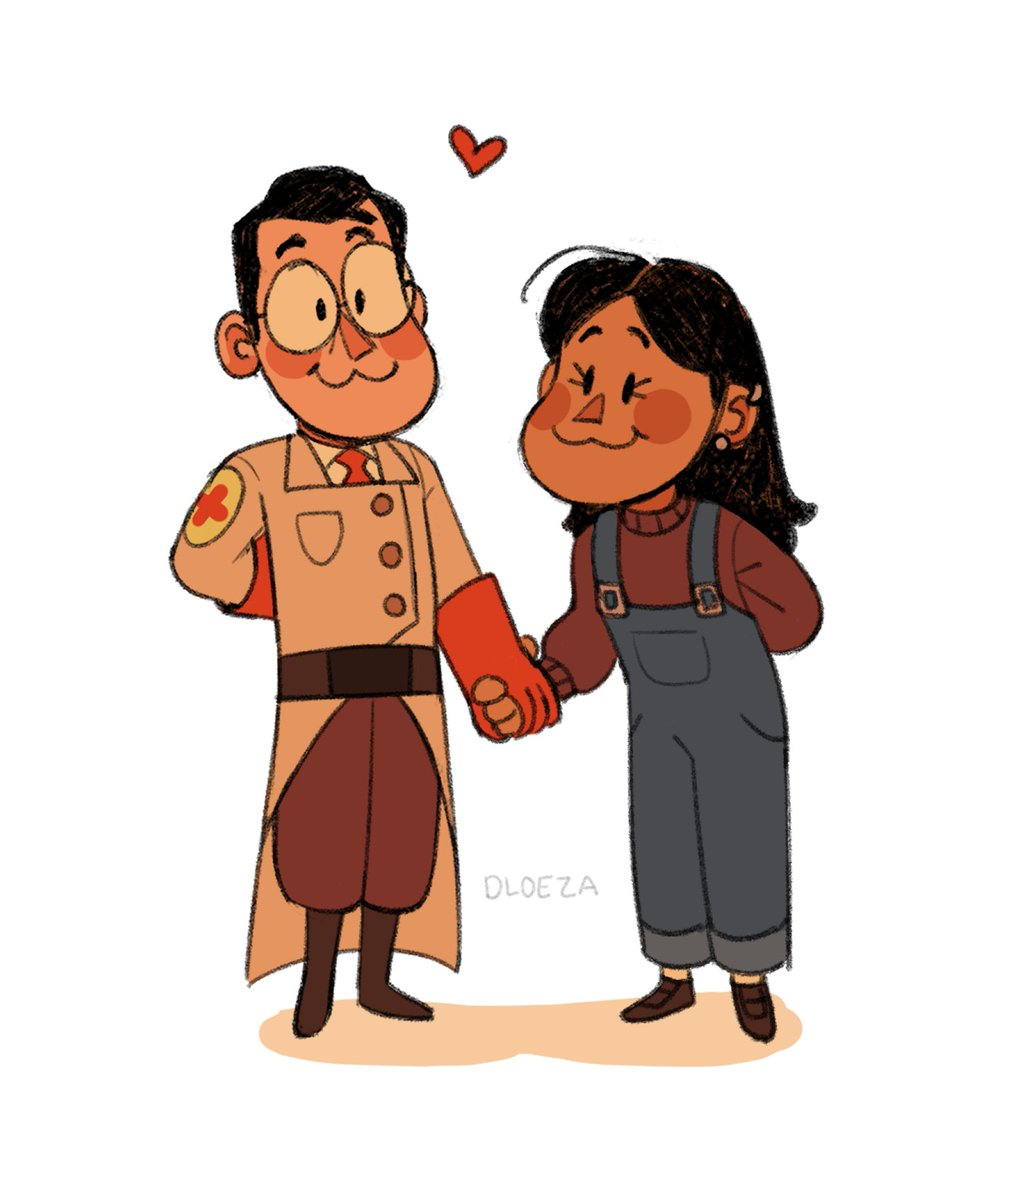 what if we were both beans and we held hands? 😳 #tf2